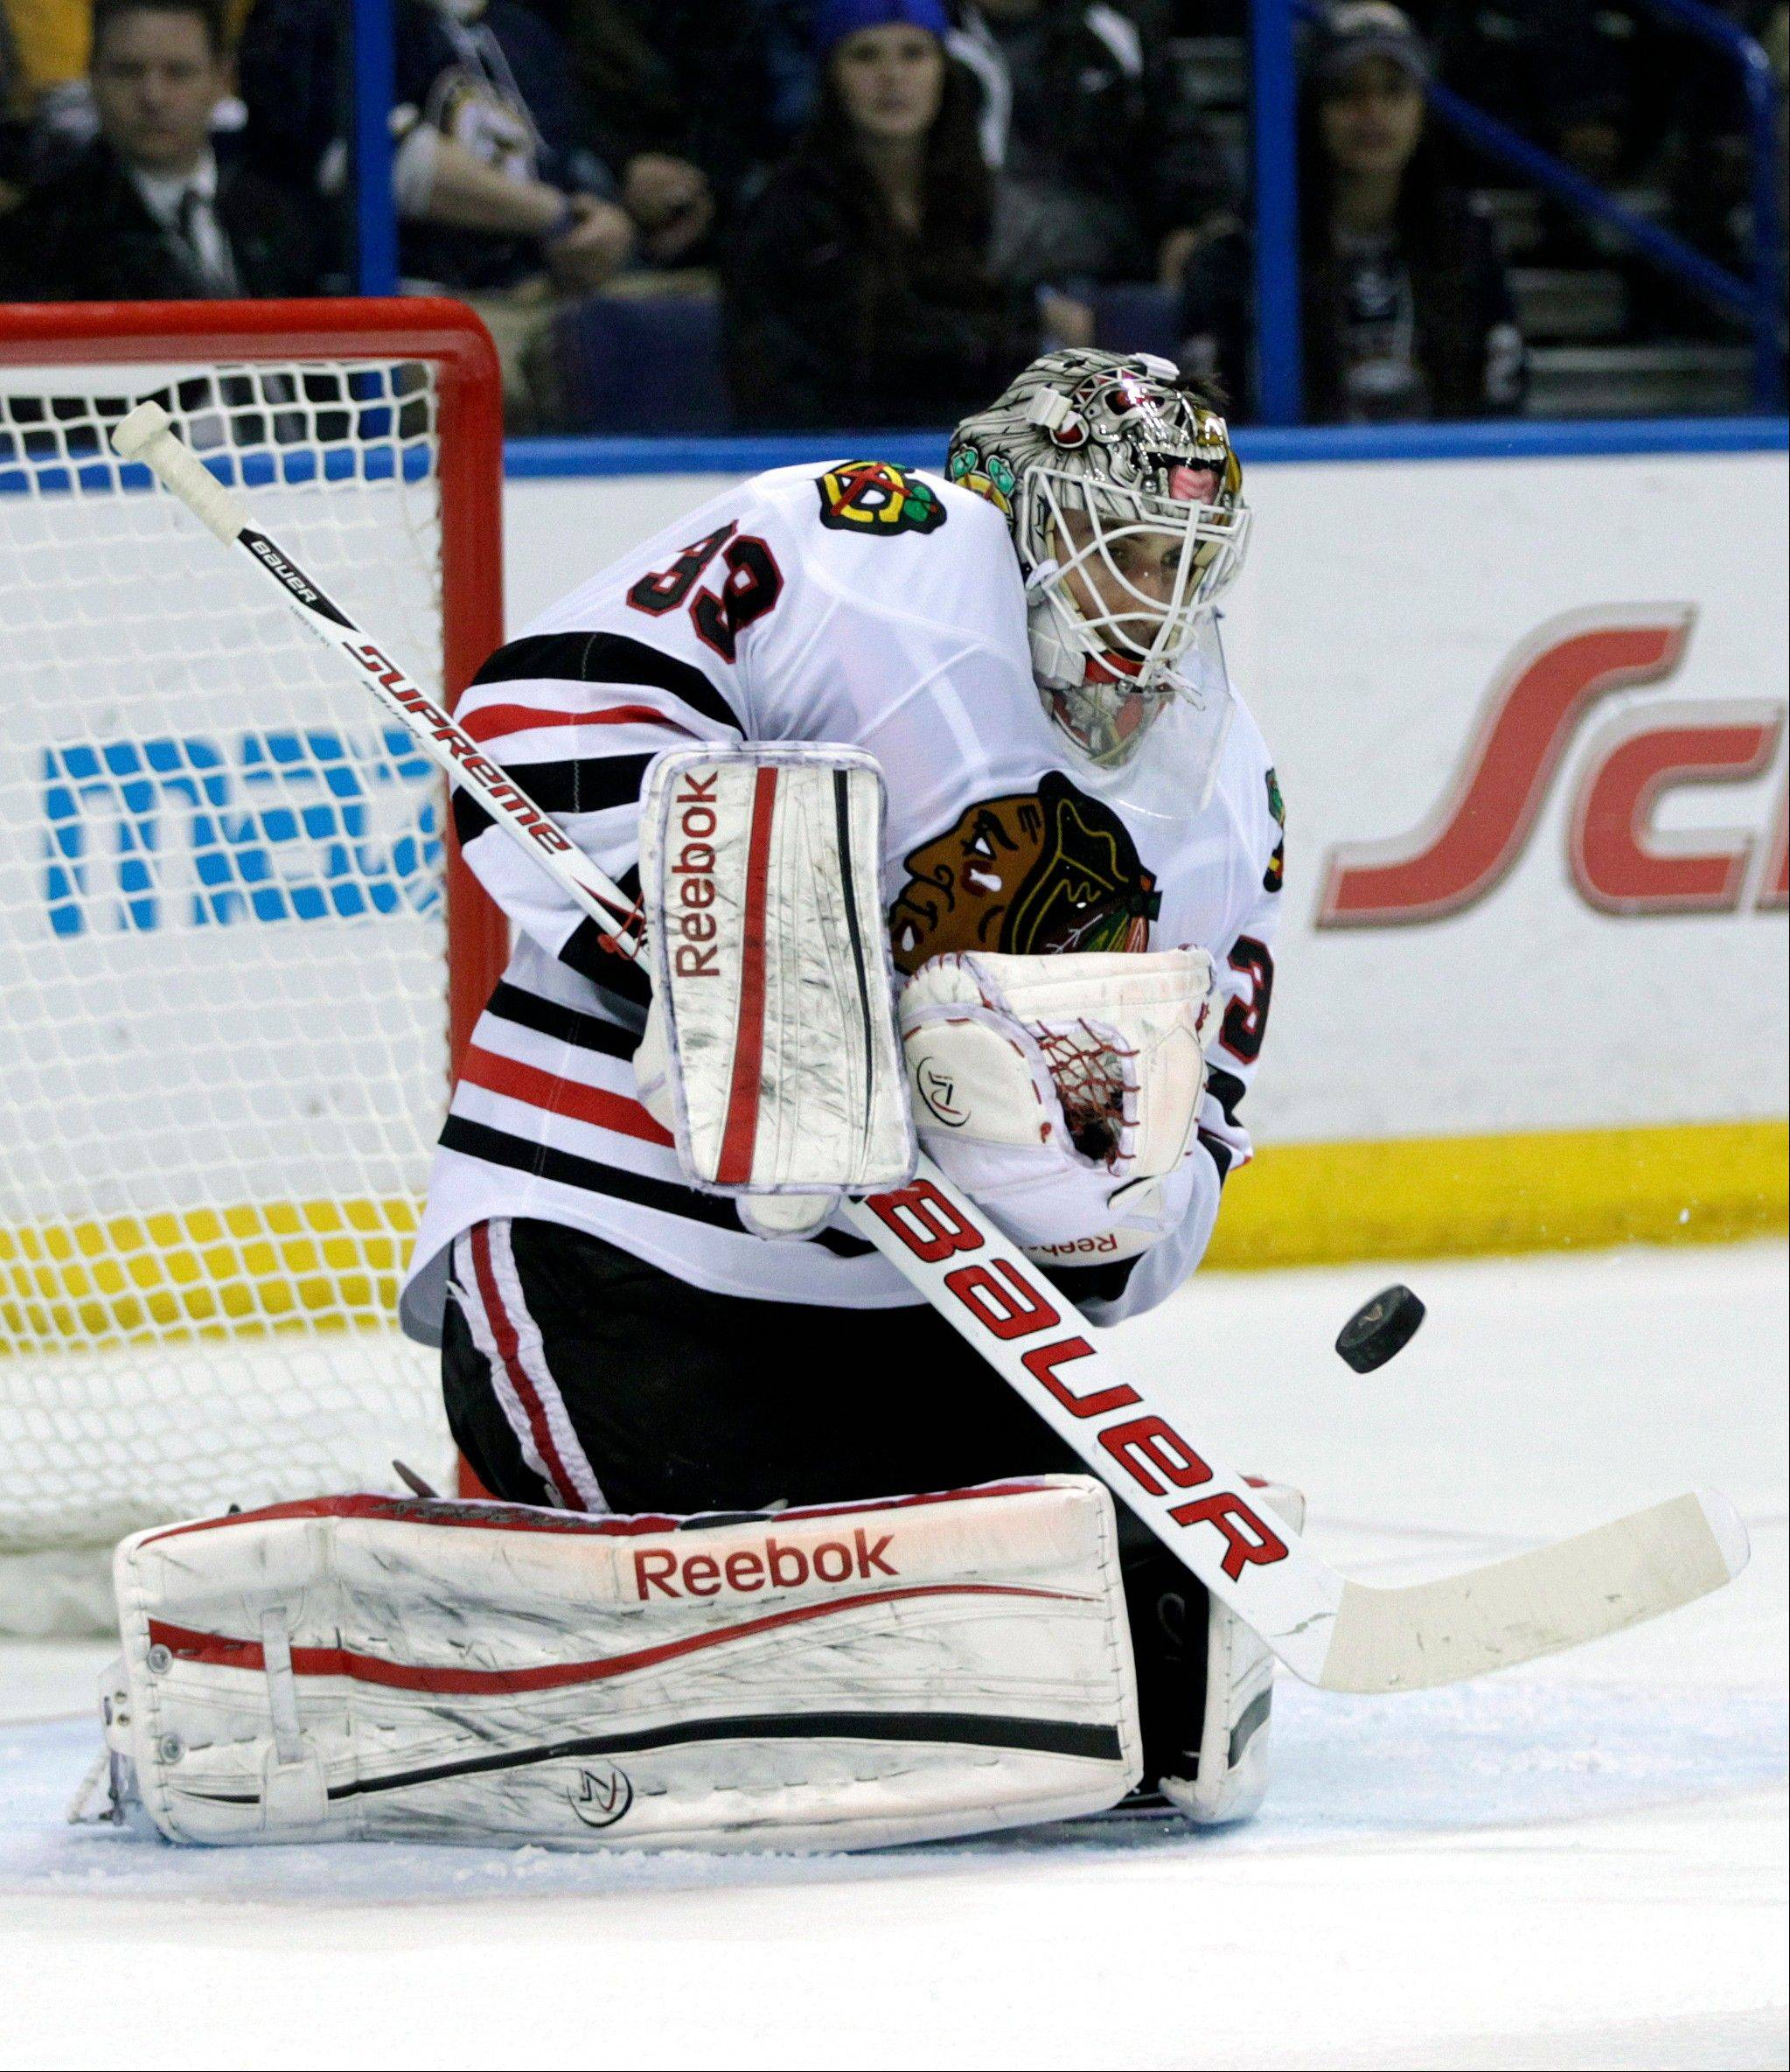 Chicago Blackhawks goalie Carter Hutton (33) makes a save in the second period of an NHL hockey game against the St. Louis Blues, Saturday, April 27, 2013 in St. Louis.